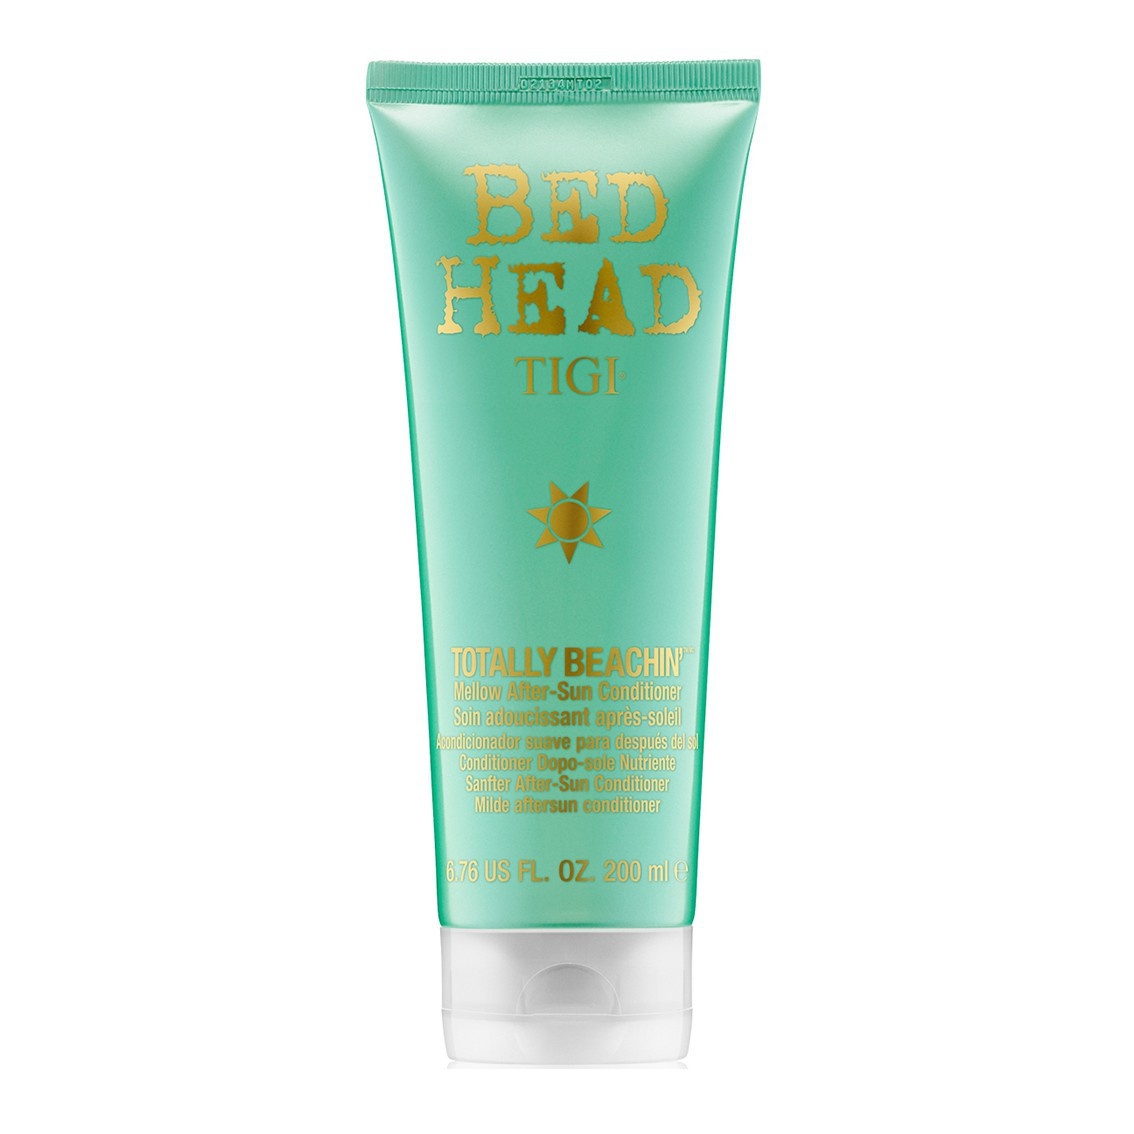 tigi-totallybeachin-aftersun.jpg